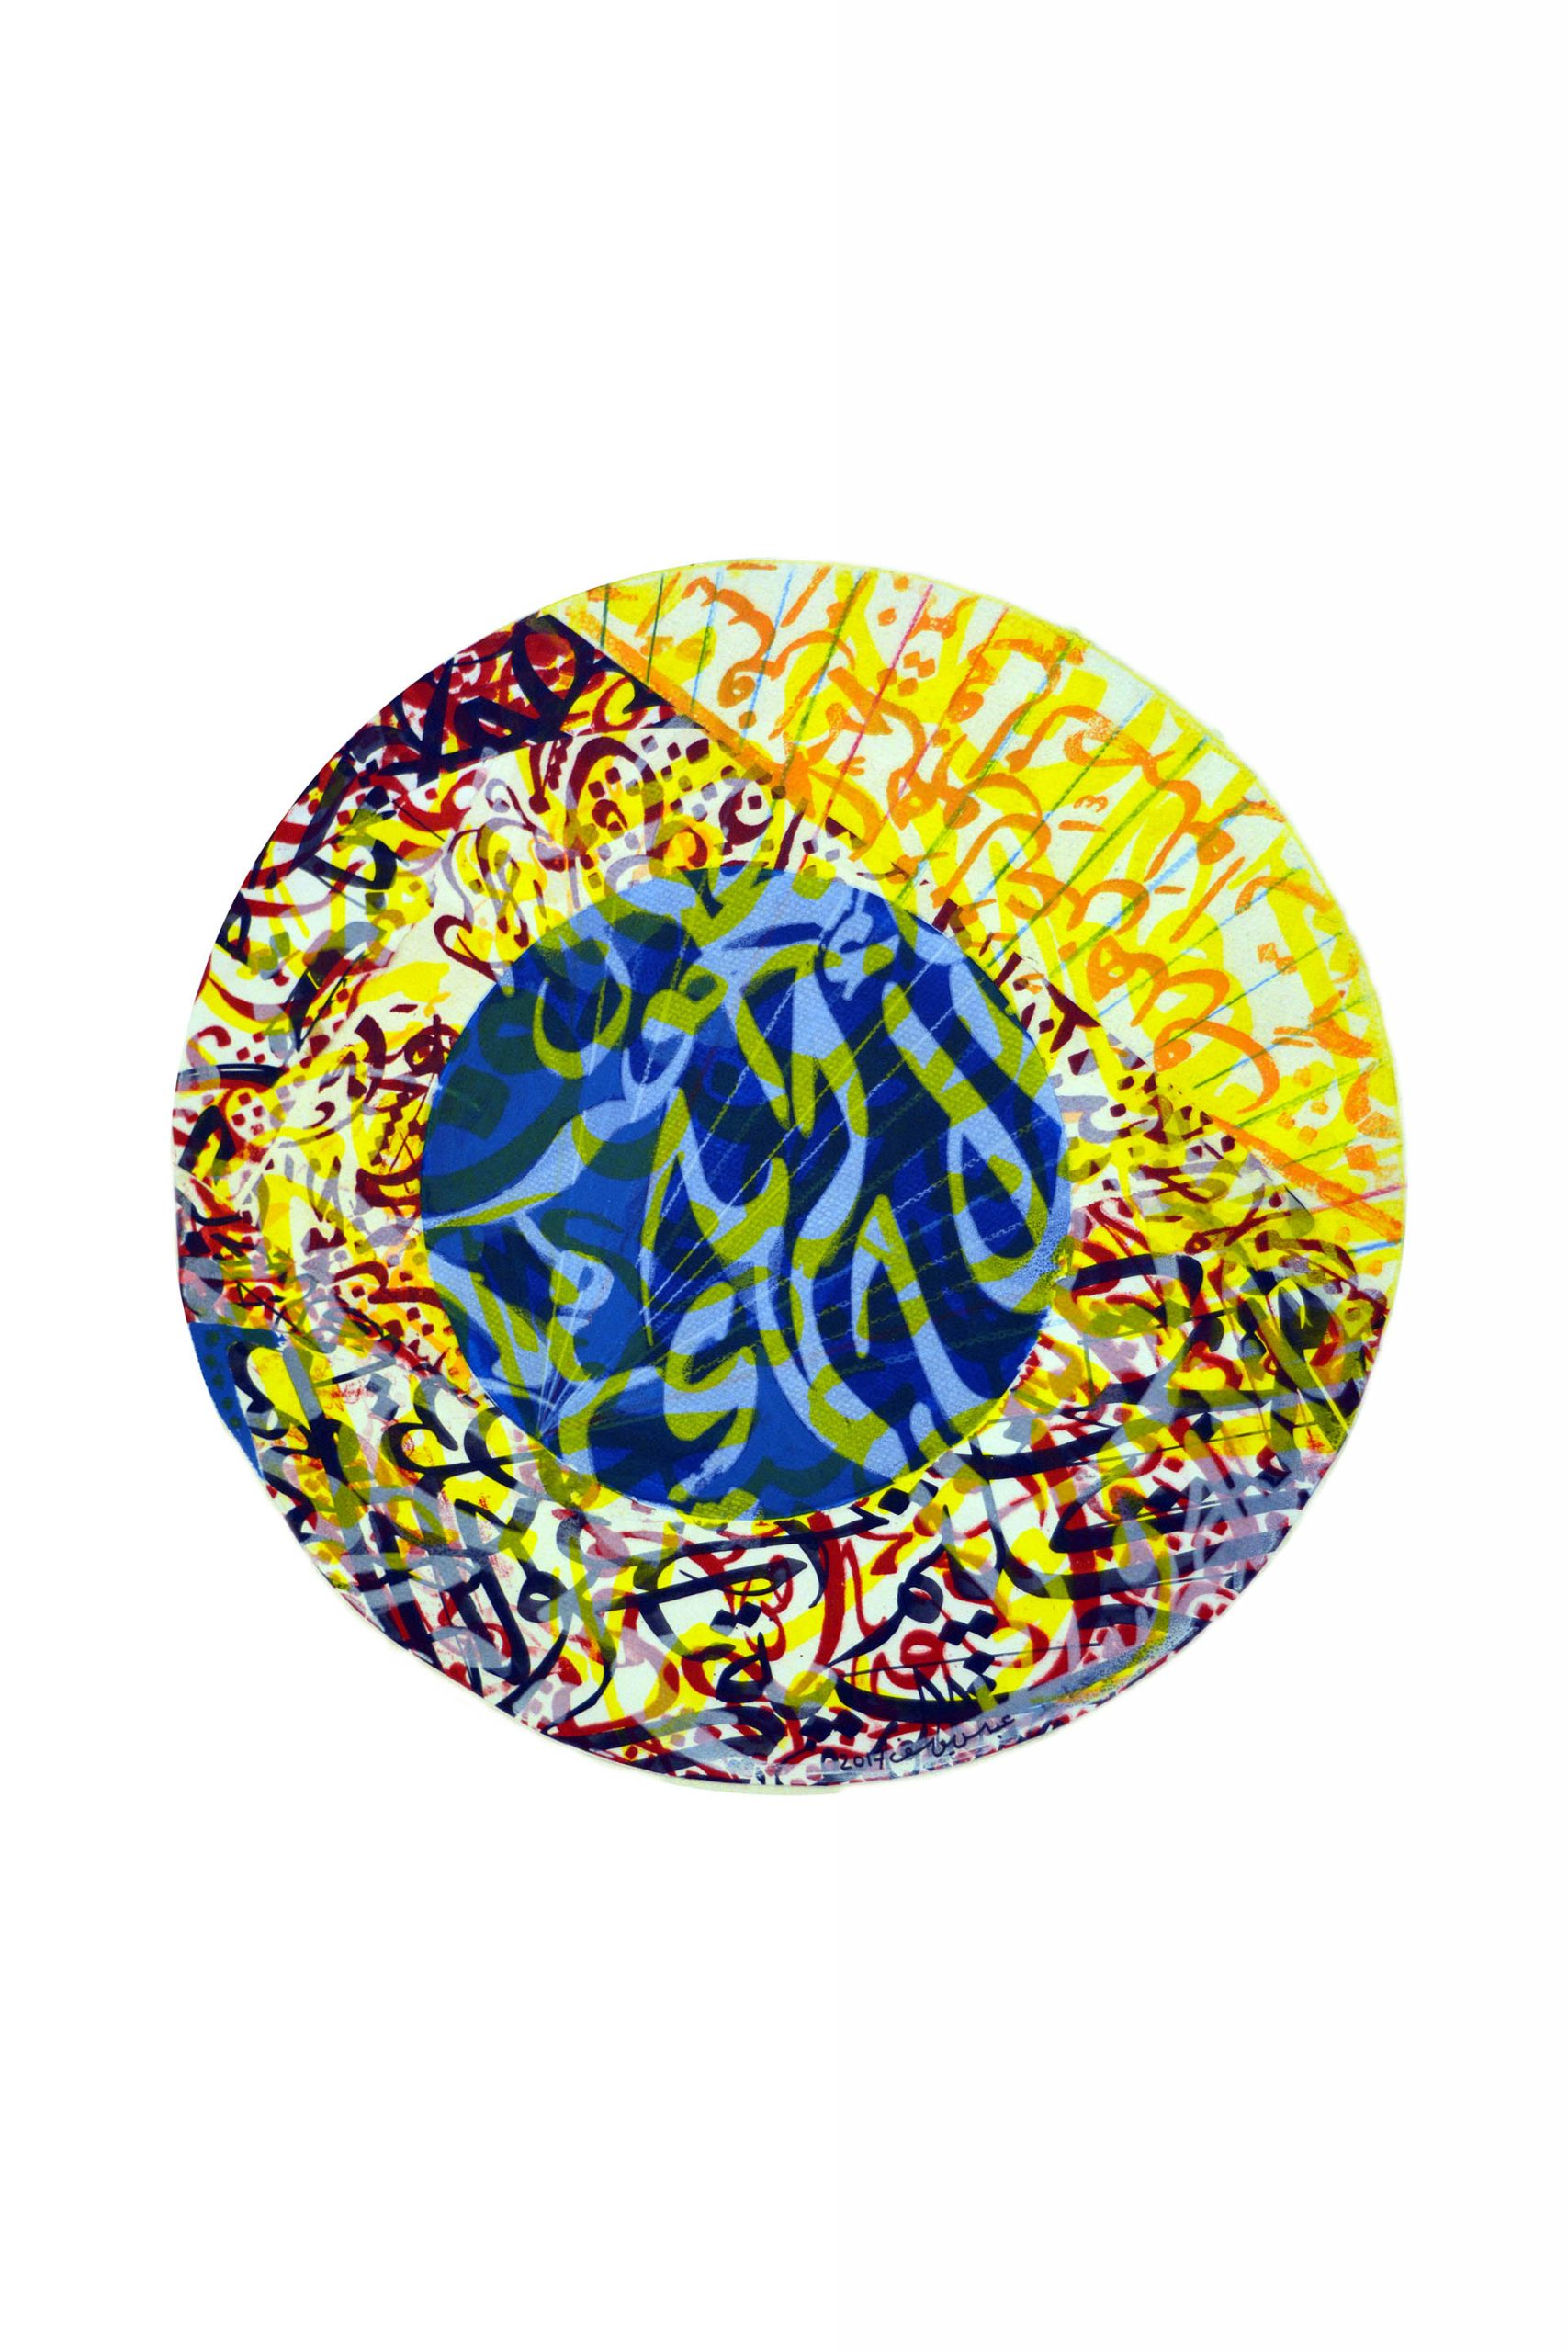 Abbas Yousif Calligraphy Series